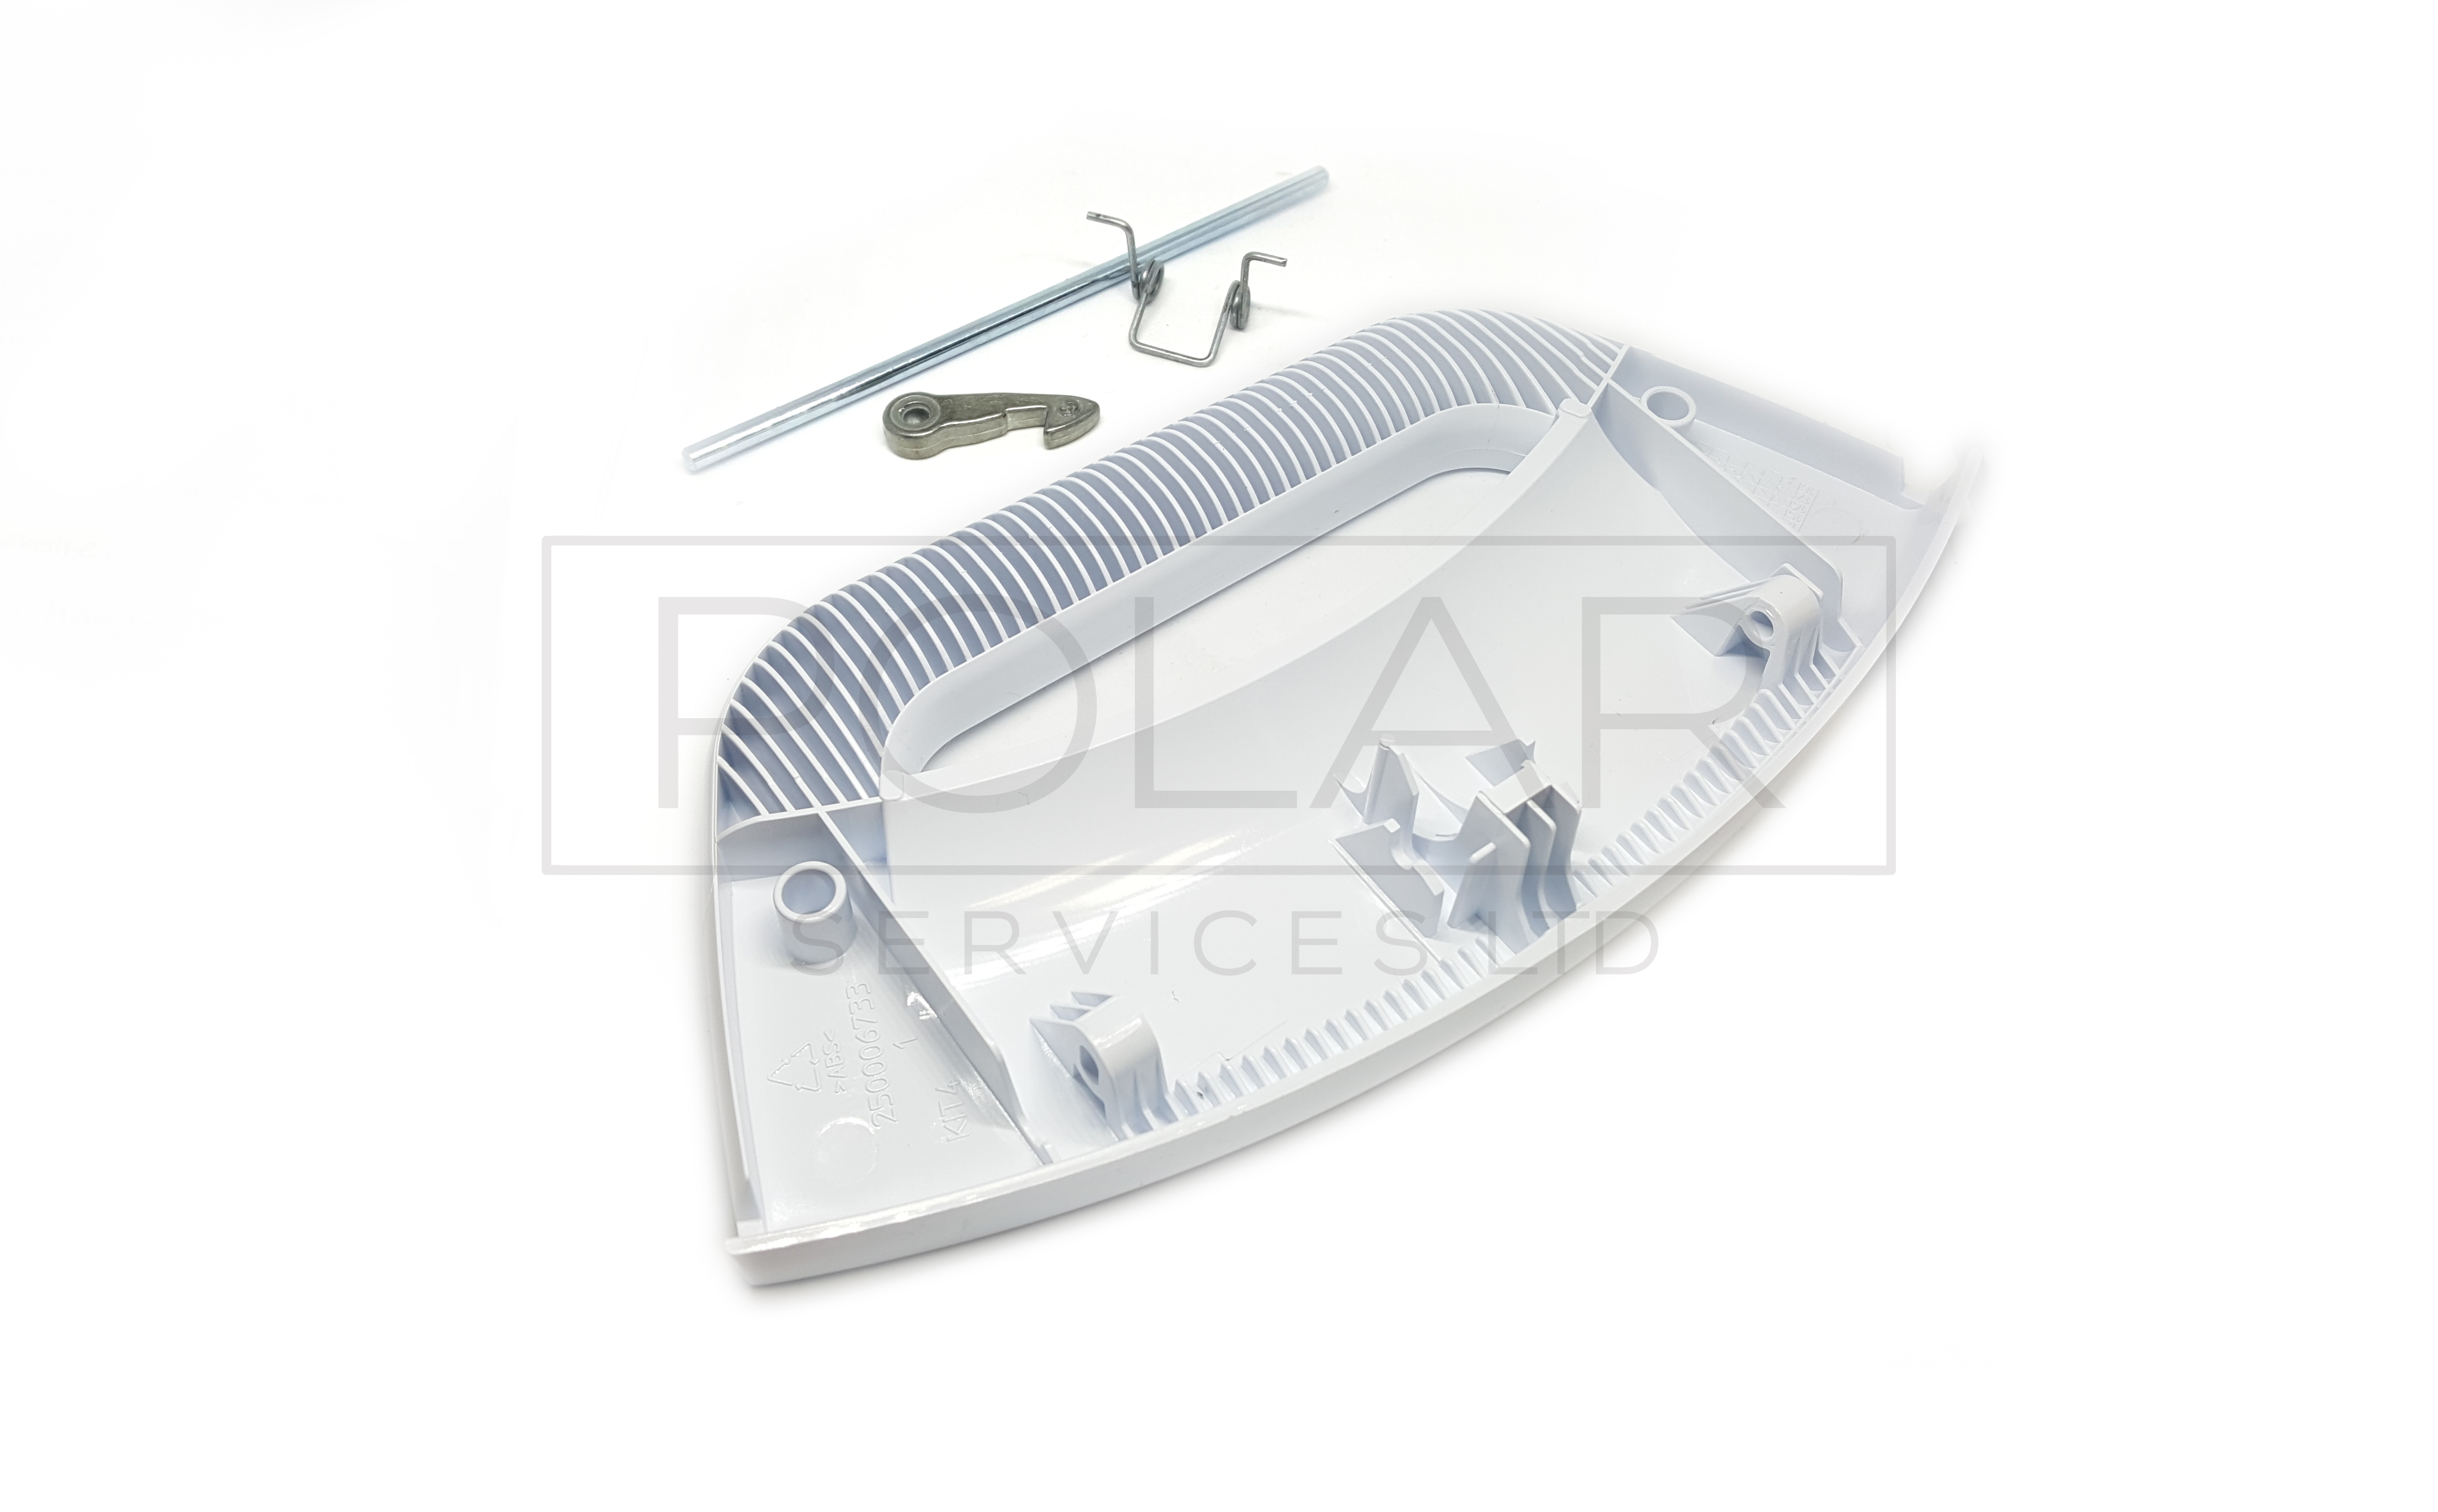 WASHING MACHINE DOOR HANDLE. white, kit 4 pcs - distance betw. couplings 124mm INDESIT-ARISTON-HOTPOINT Malta, 								Washing Machine Malta, Polar Services LTD Malta Malta